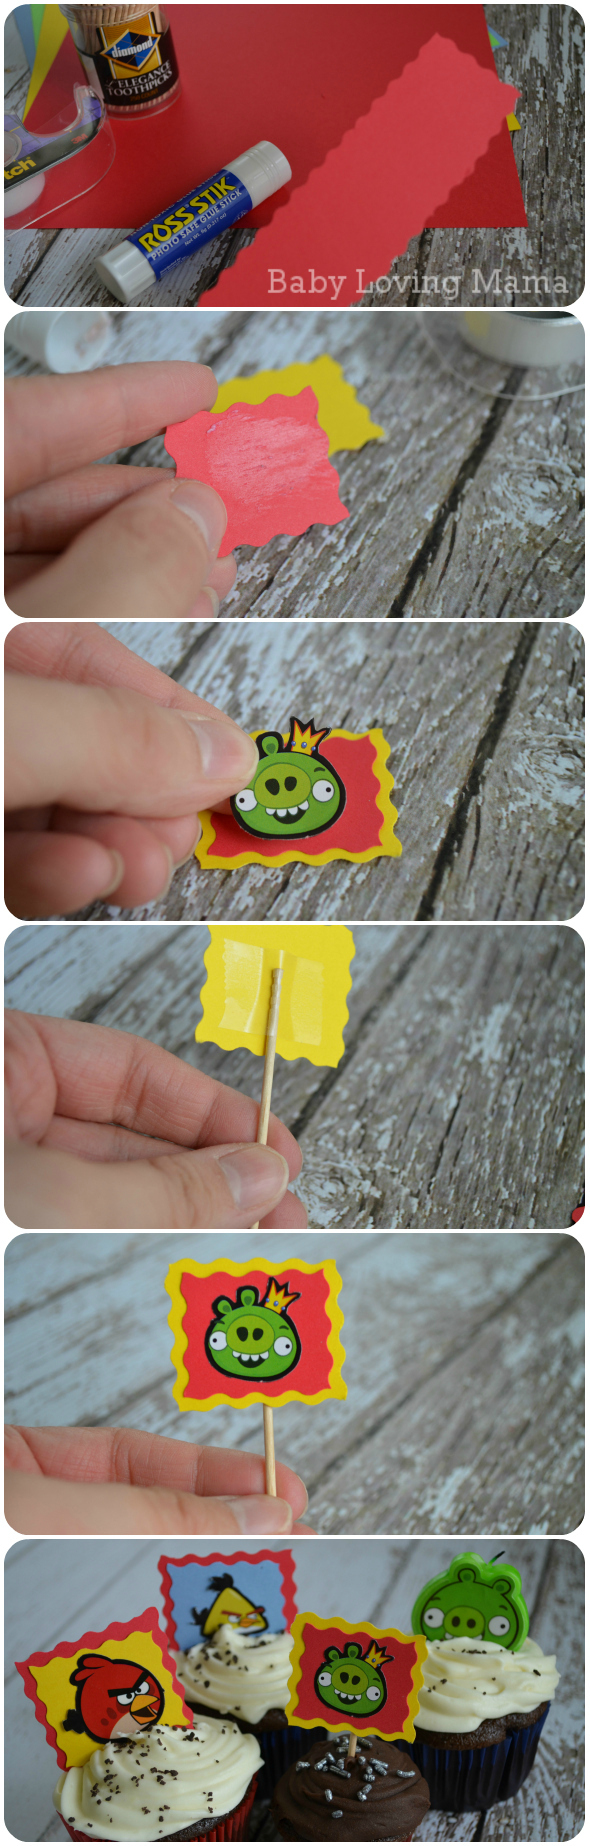 Cupcake Angry Birds Picks Craft Tutorial